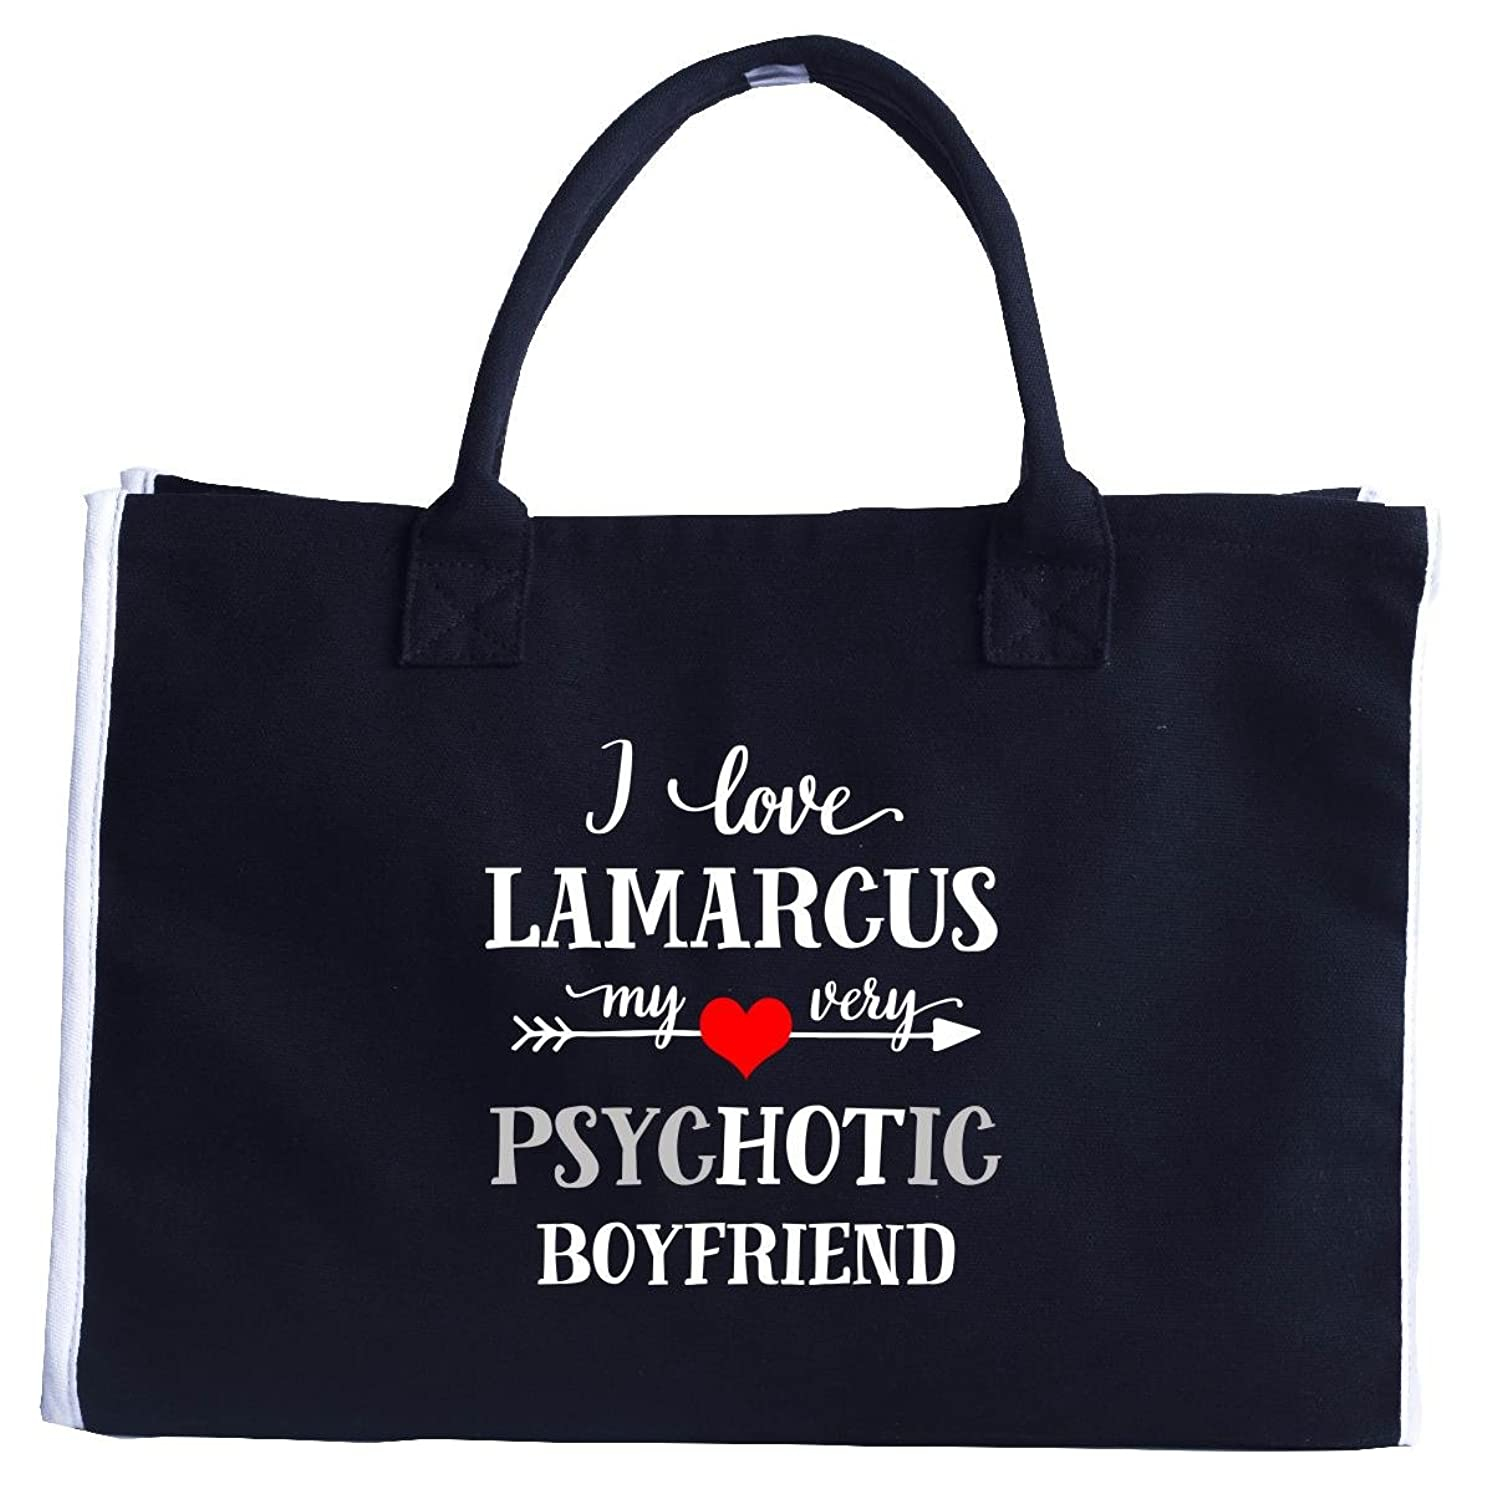 I Love Lamarcus My Very Psychotic Boyfriend. Gift For Her - Fashion Tote Bag